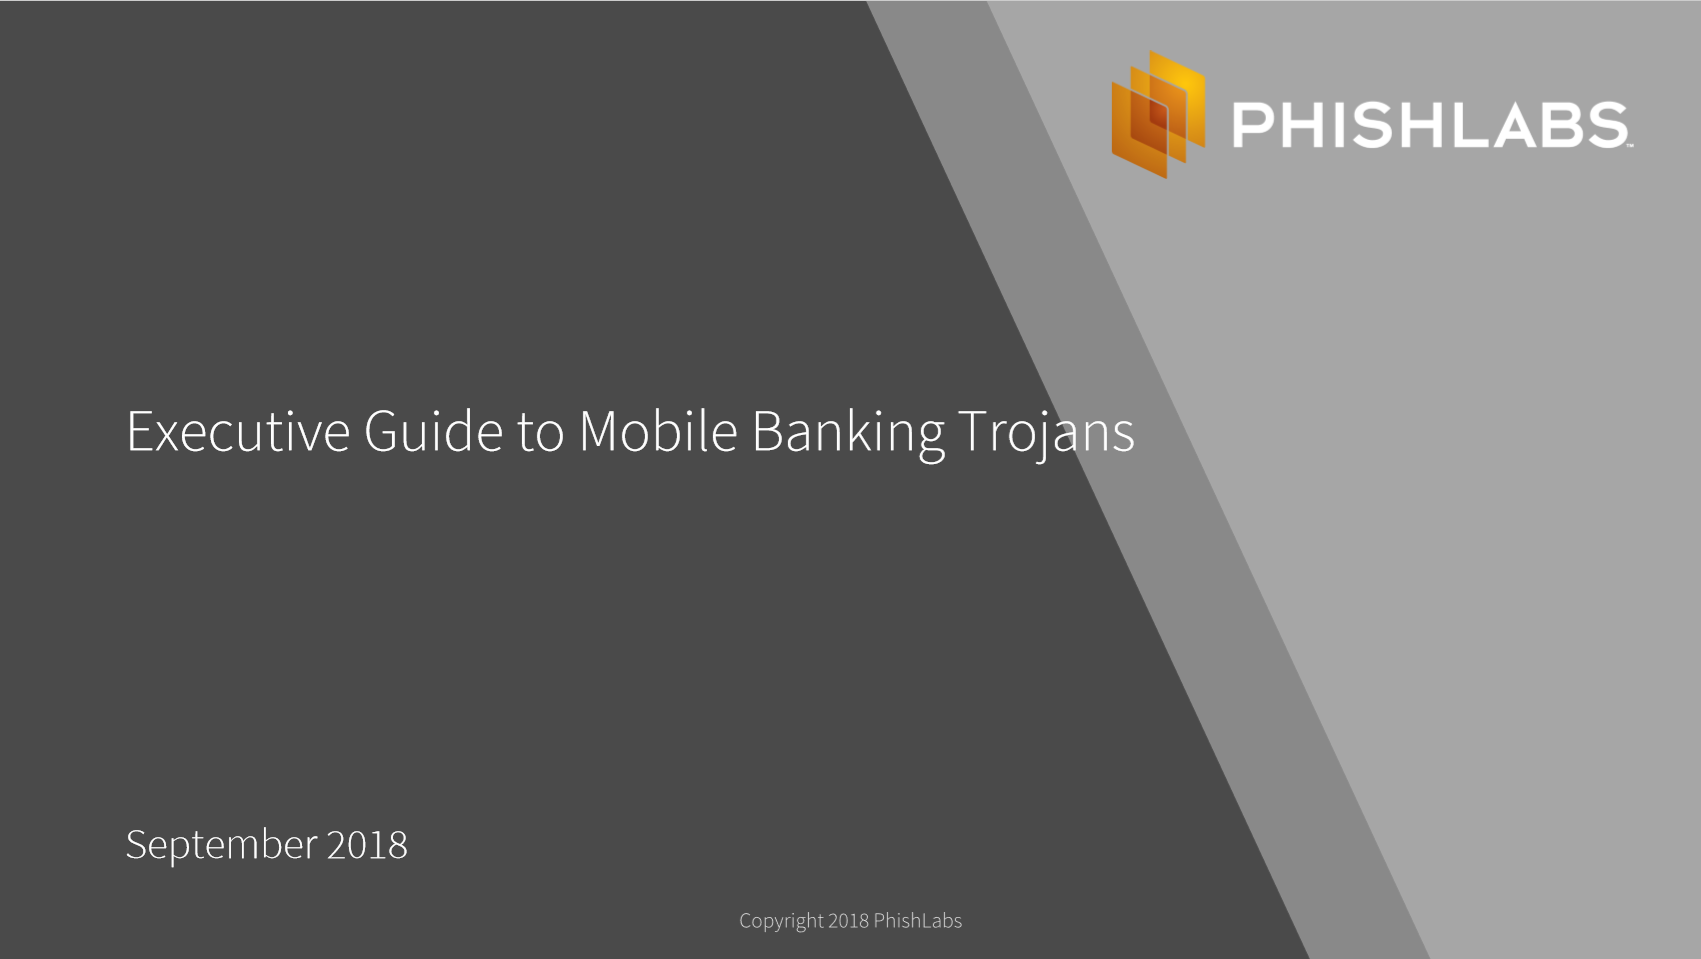 executive guide to mobile banking trojans.png